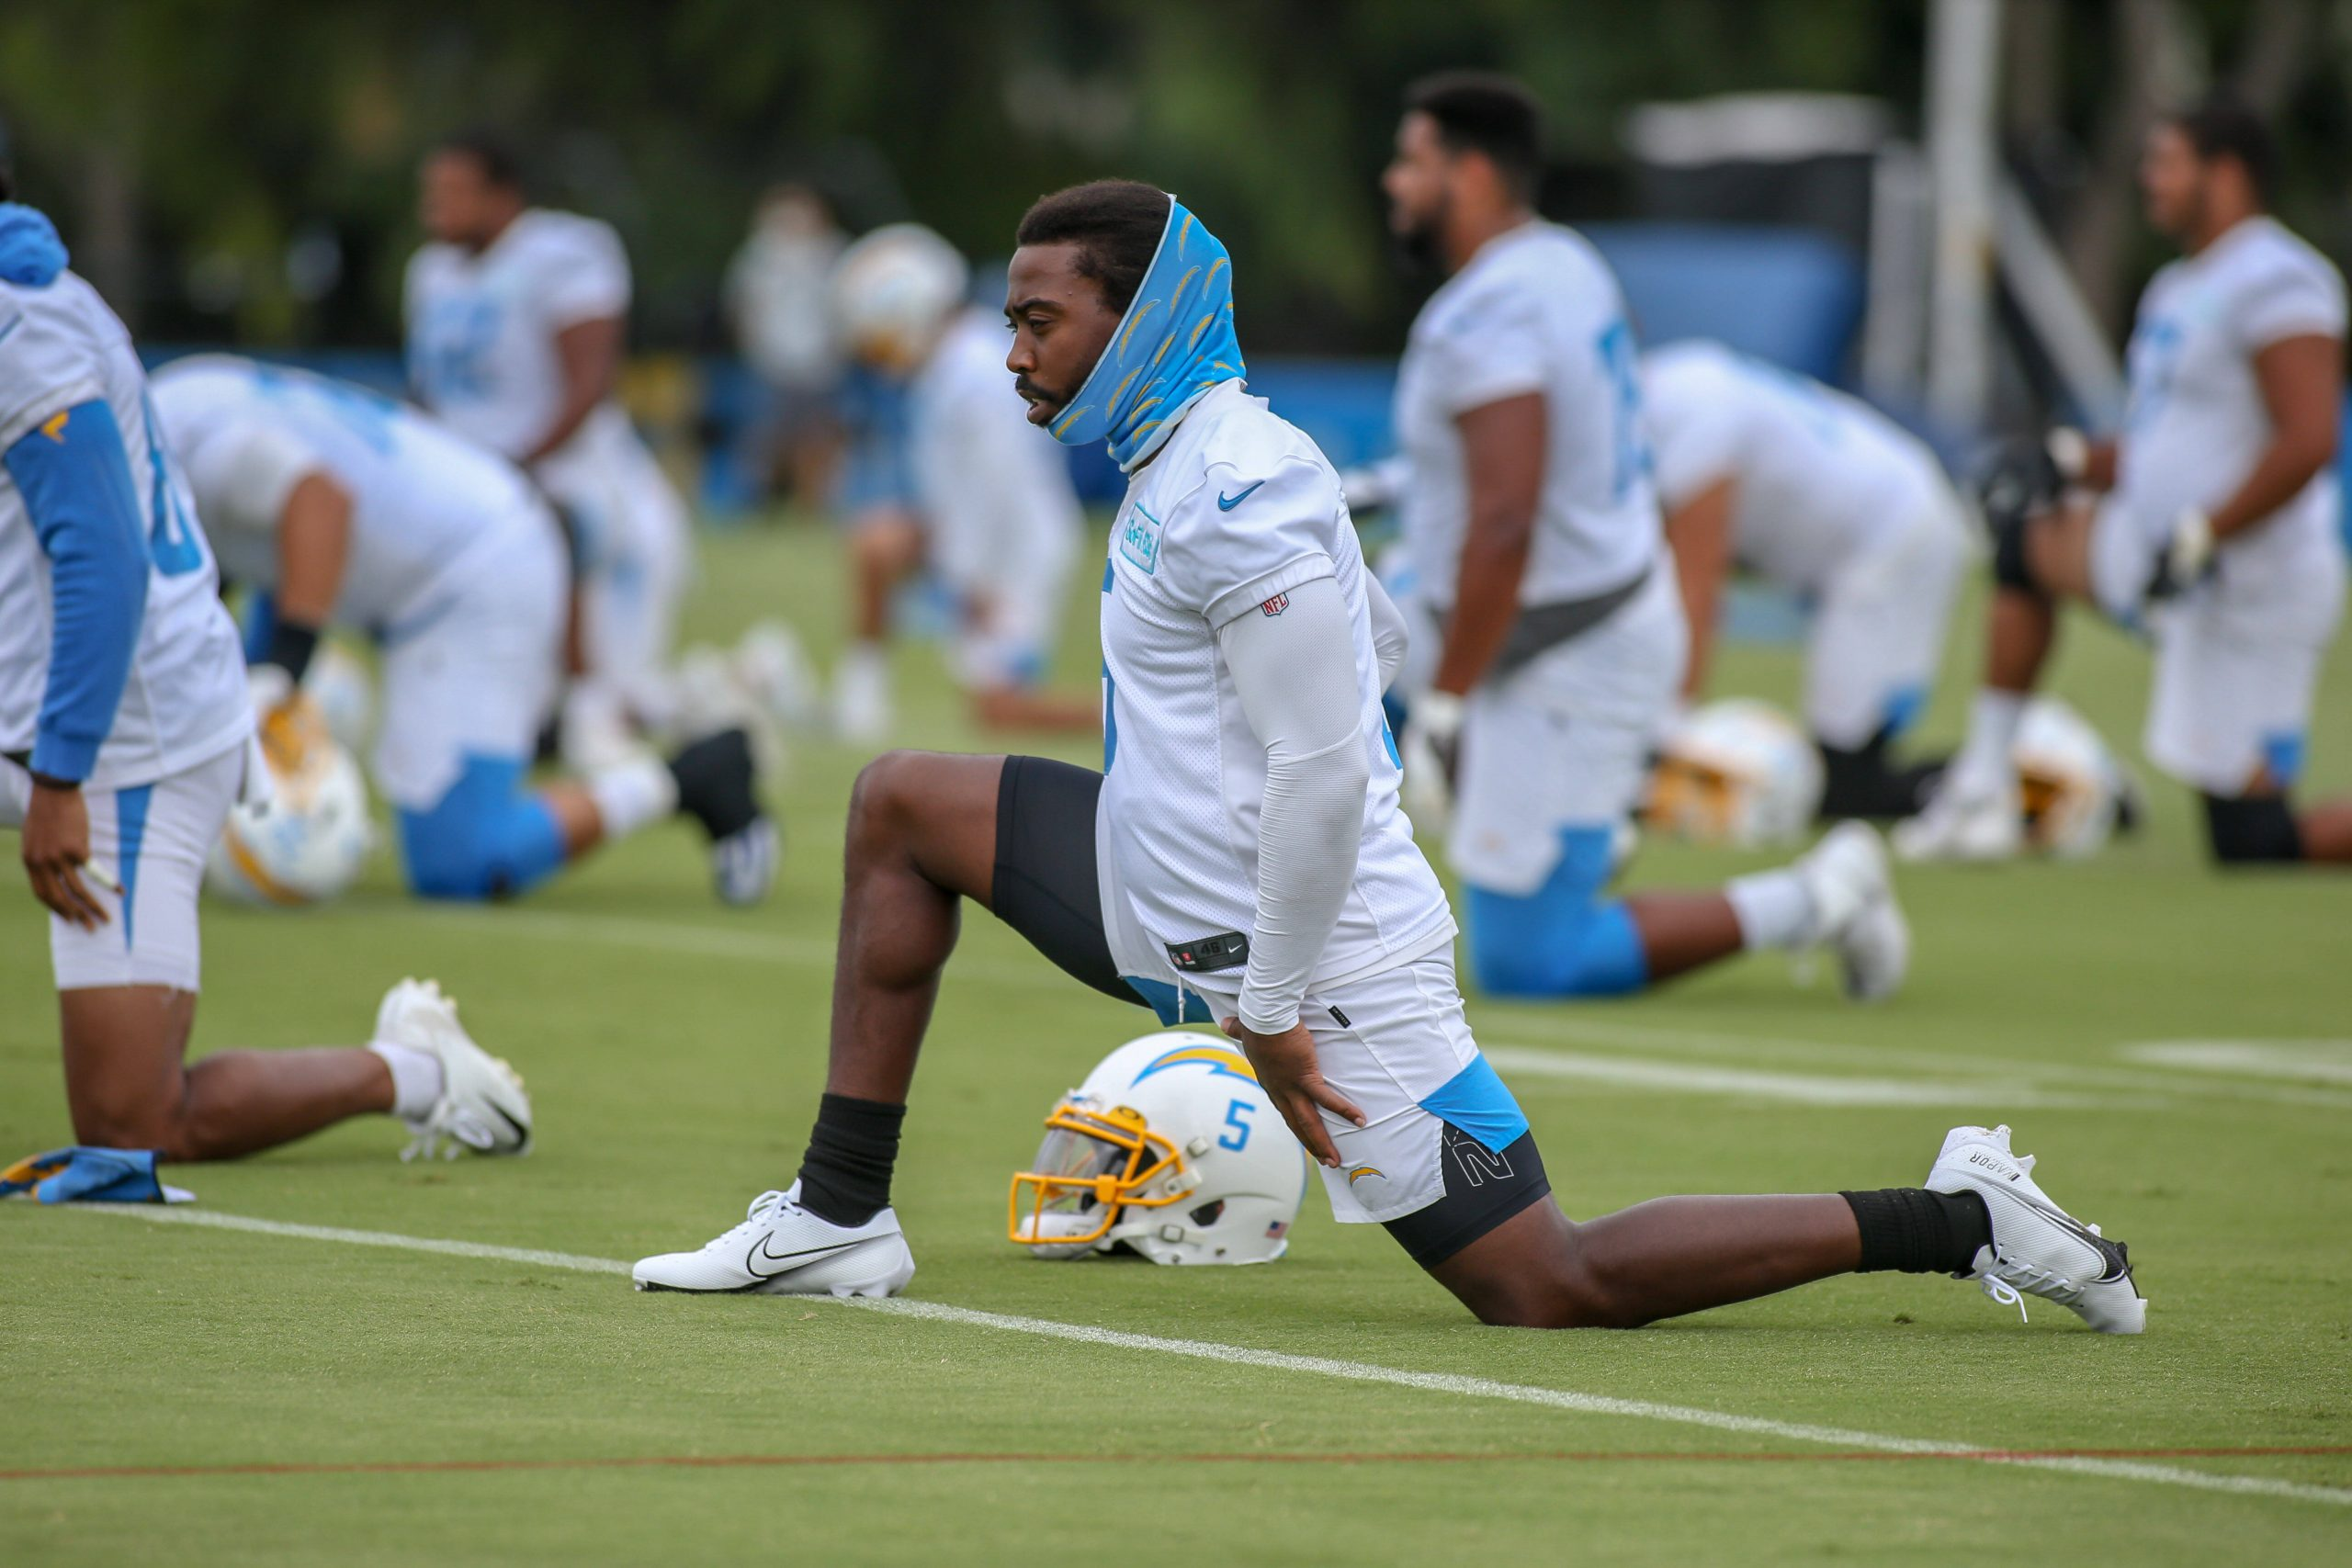 COSTA MESA, CA - AUGUST 31: Los Angeles Chargers quarterback Tyrod Taylor 5 during the Los Angeles Chargers training cam